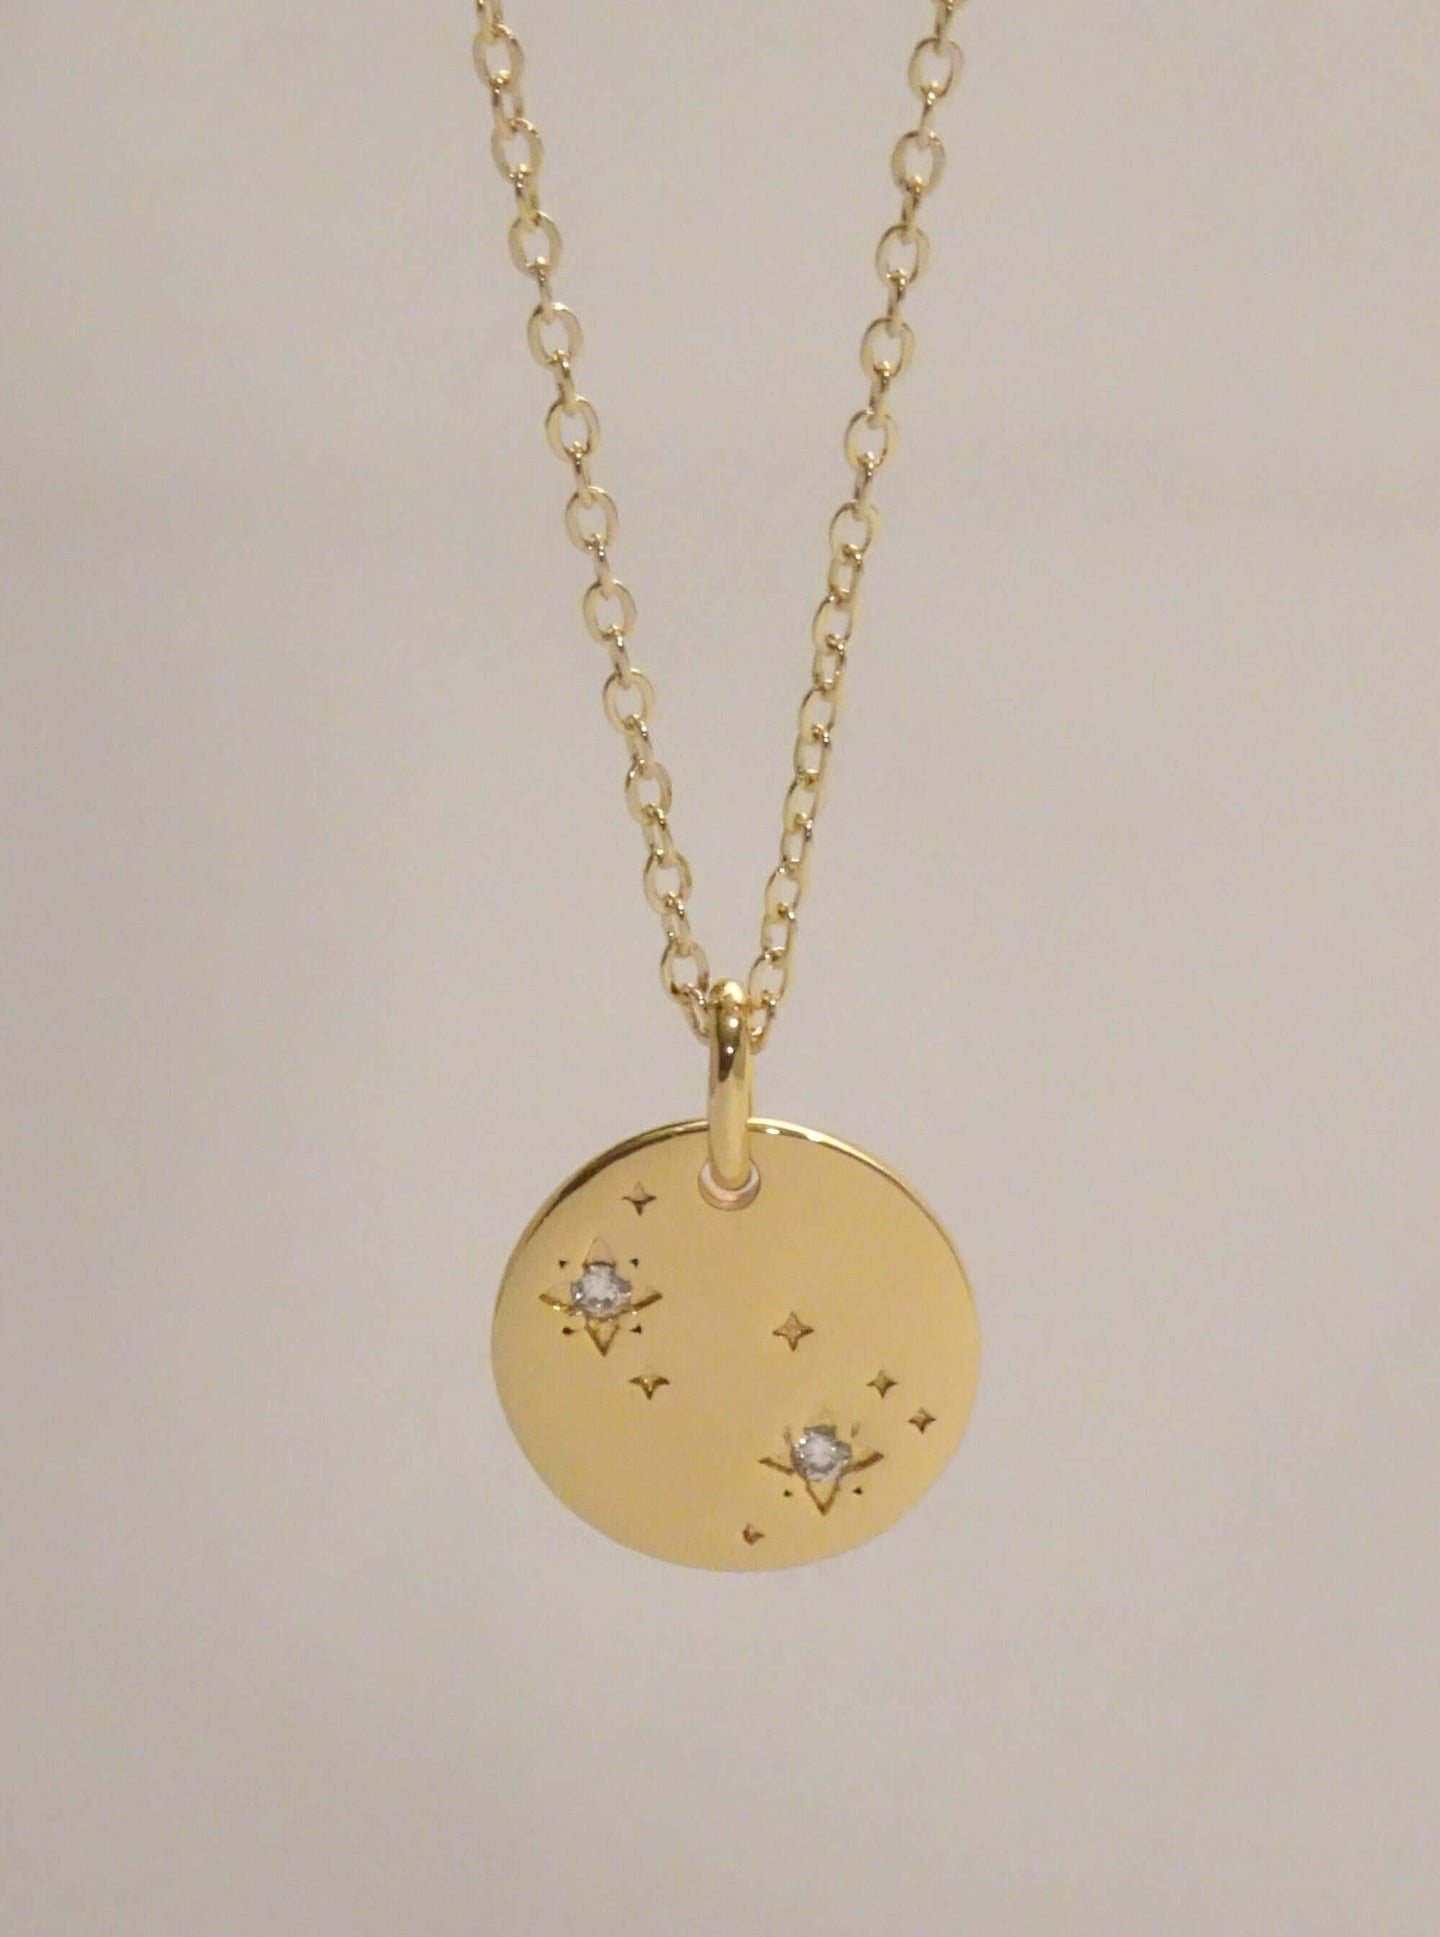 gemini jewelry, jewelry gemini, gemini necklace, gemini constellation necklace, gemini necklace gold, gemini necklace silver, zodiac necklace gemini, gemini necklace for men, zodiac necklace gold, zodiac pendant necklace, zodiac constellation necklace